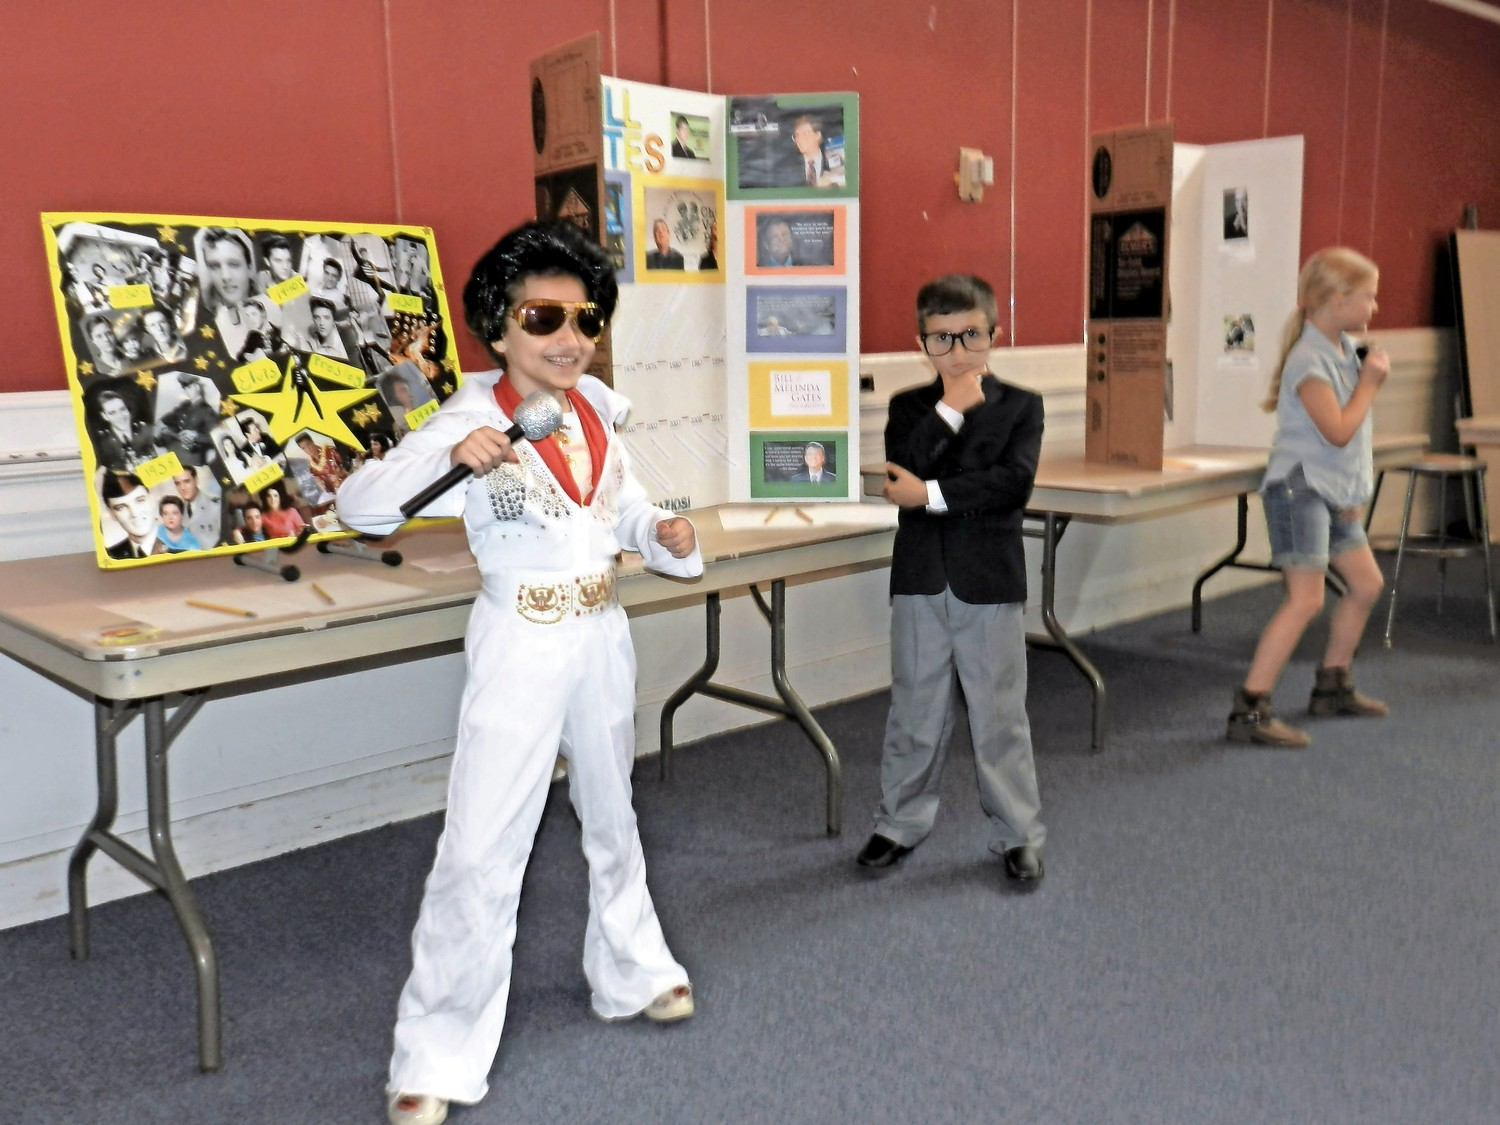 Wax figures resembling Elvis Presley (Haley Nugent), Bill Gates (Lorenzo Graziosi), and others were on hand to give a brief historical biography for guests at the wax museum.